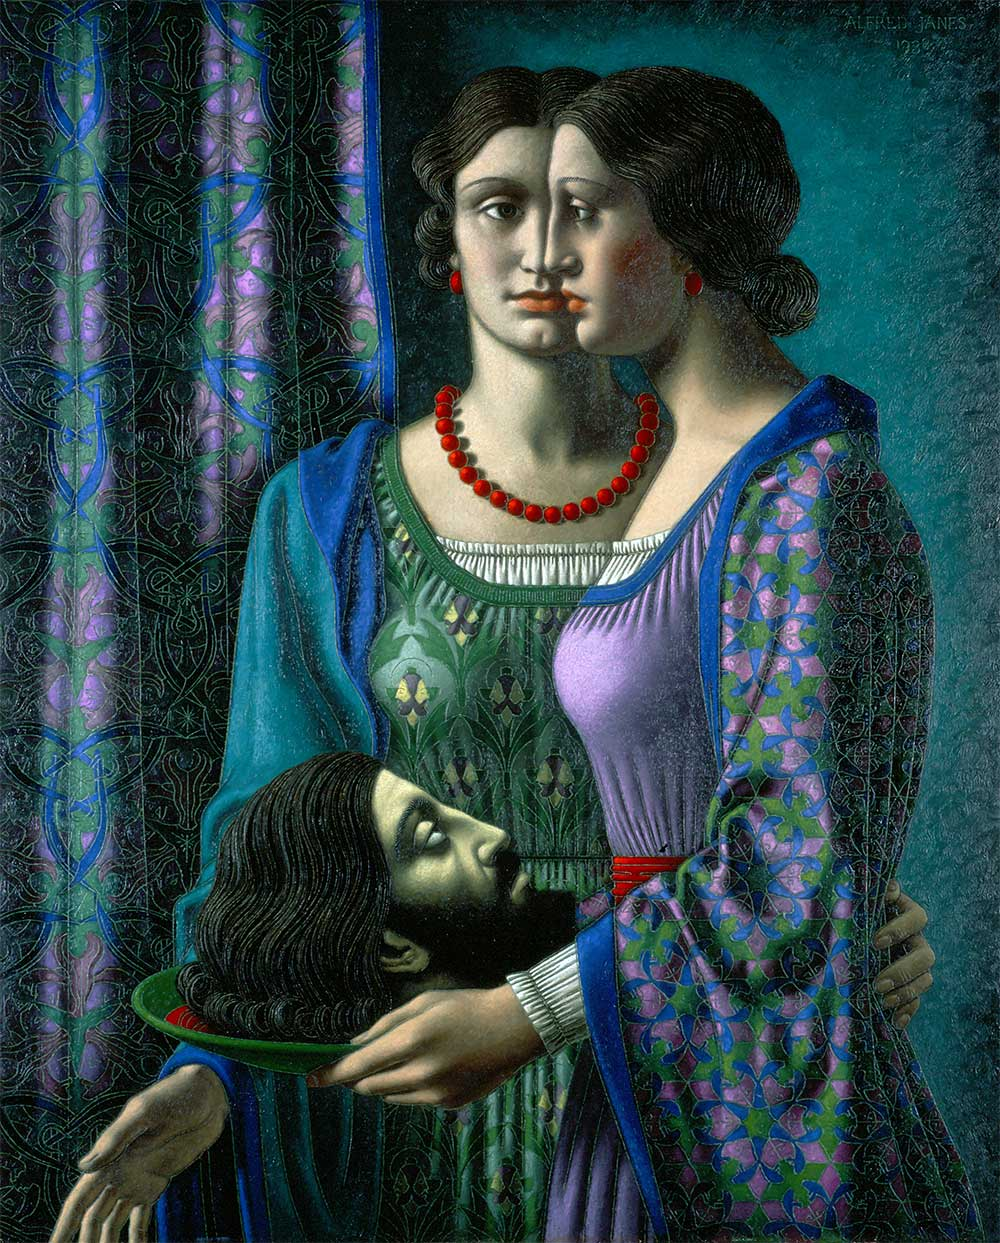 Salome by Alfred Janes 1938 Merthyr Tydfil County Borough Council c estate of the artist